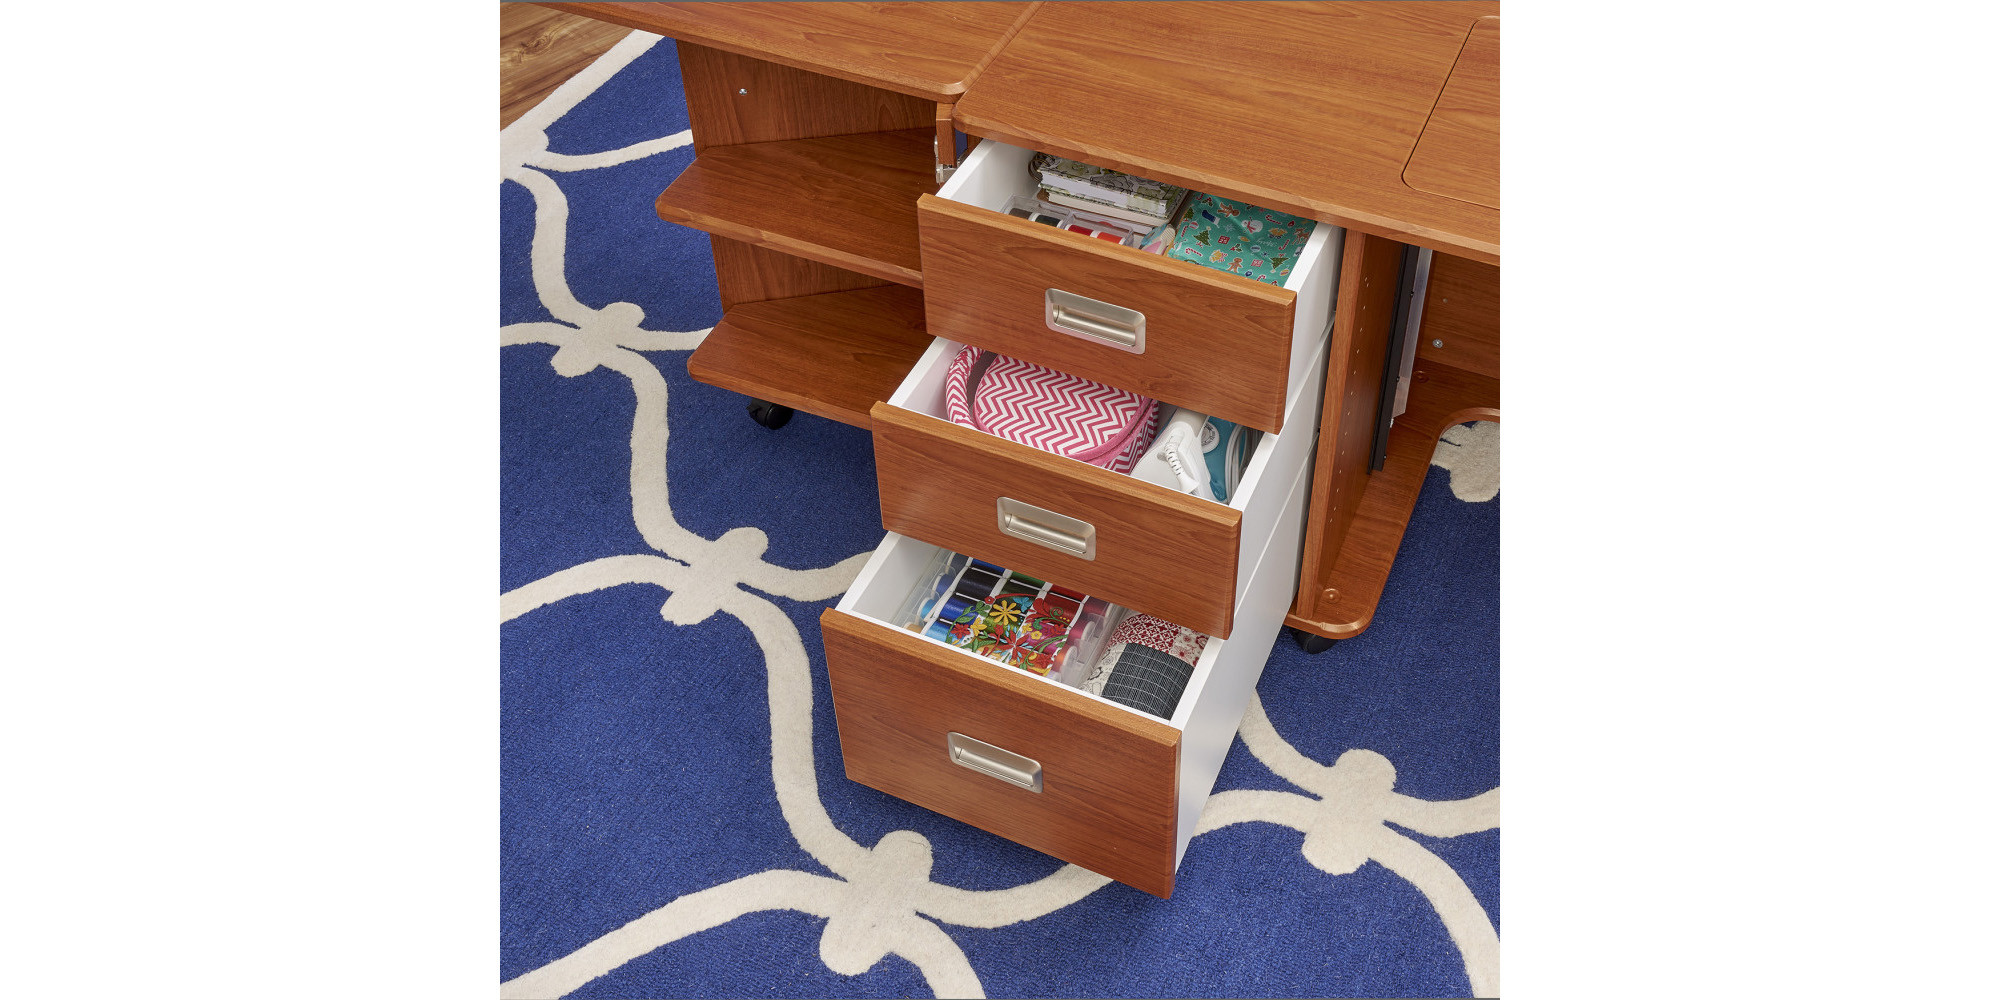 drawers_cropped.jpg